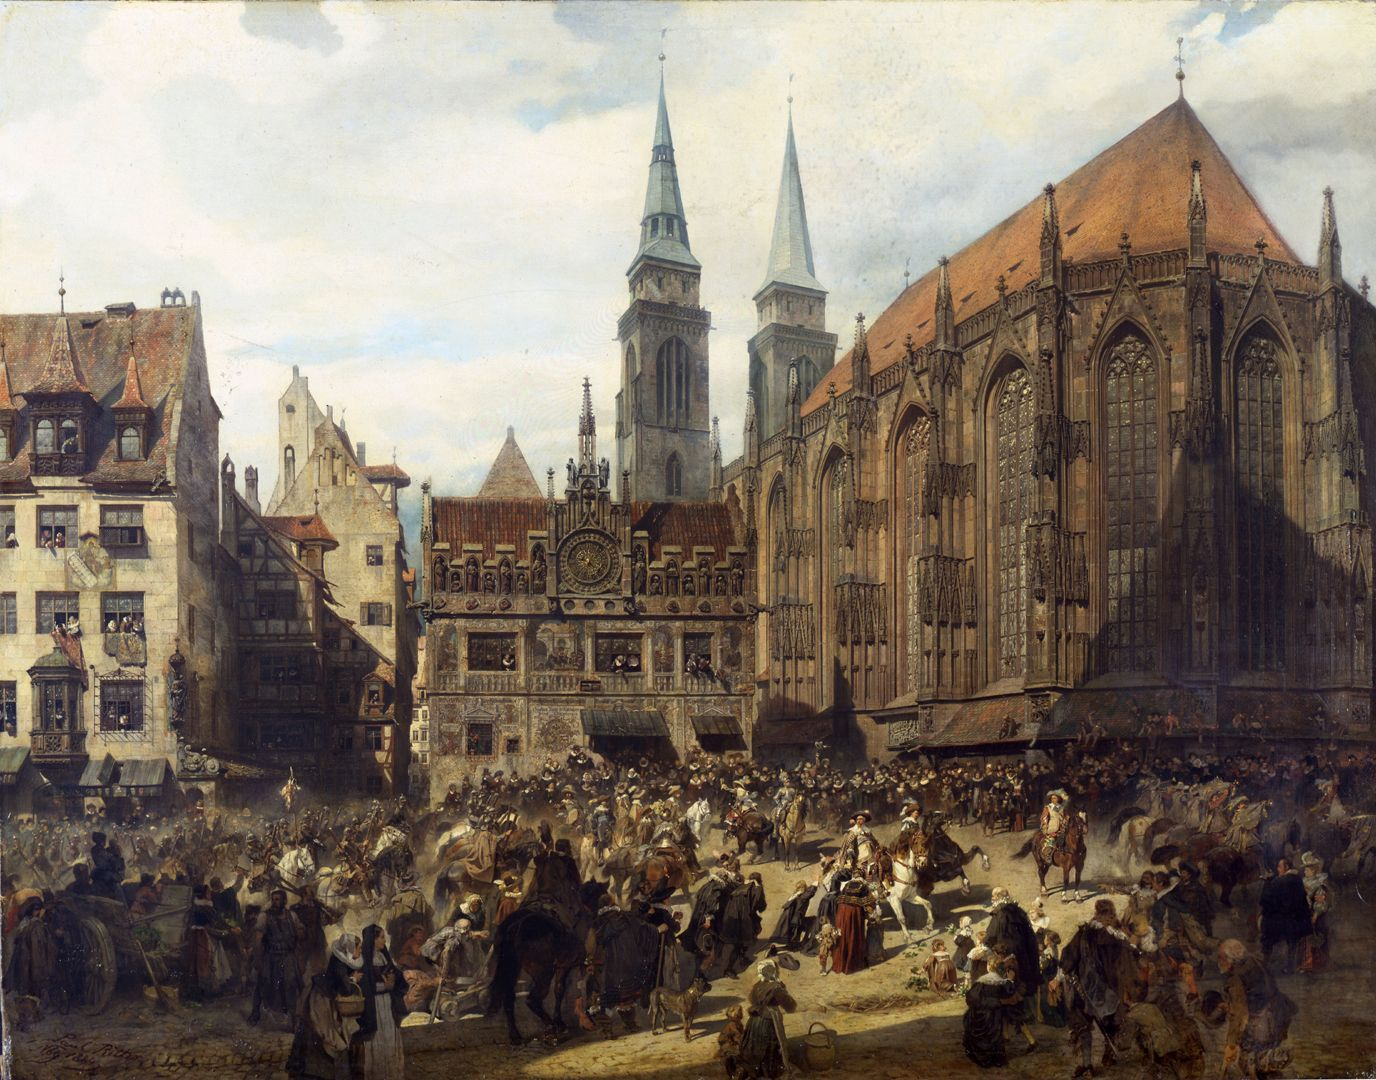 The old show at Nuremberg at the time of Gustav Adolf's entry on 21 March 1632. Art Collections of the City of Nuremberg, inventory no. Gm neu 0734